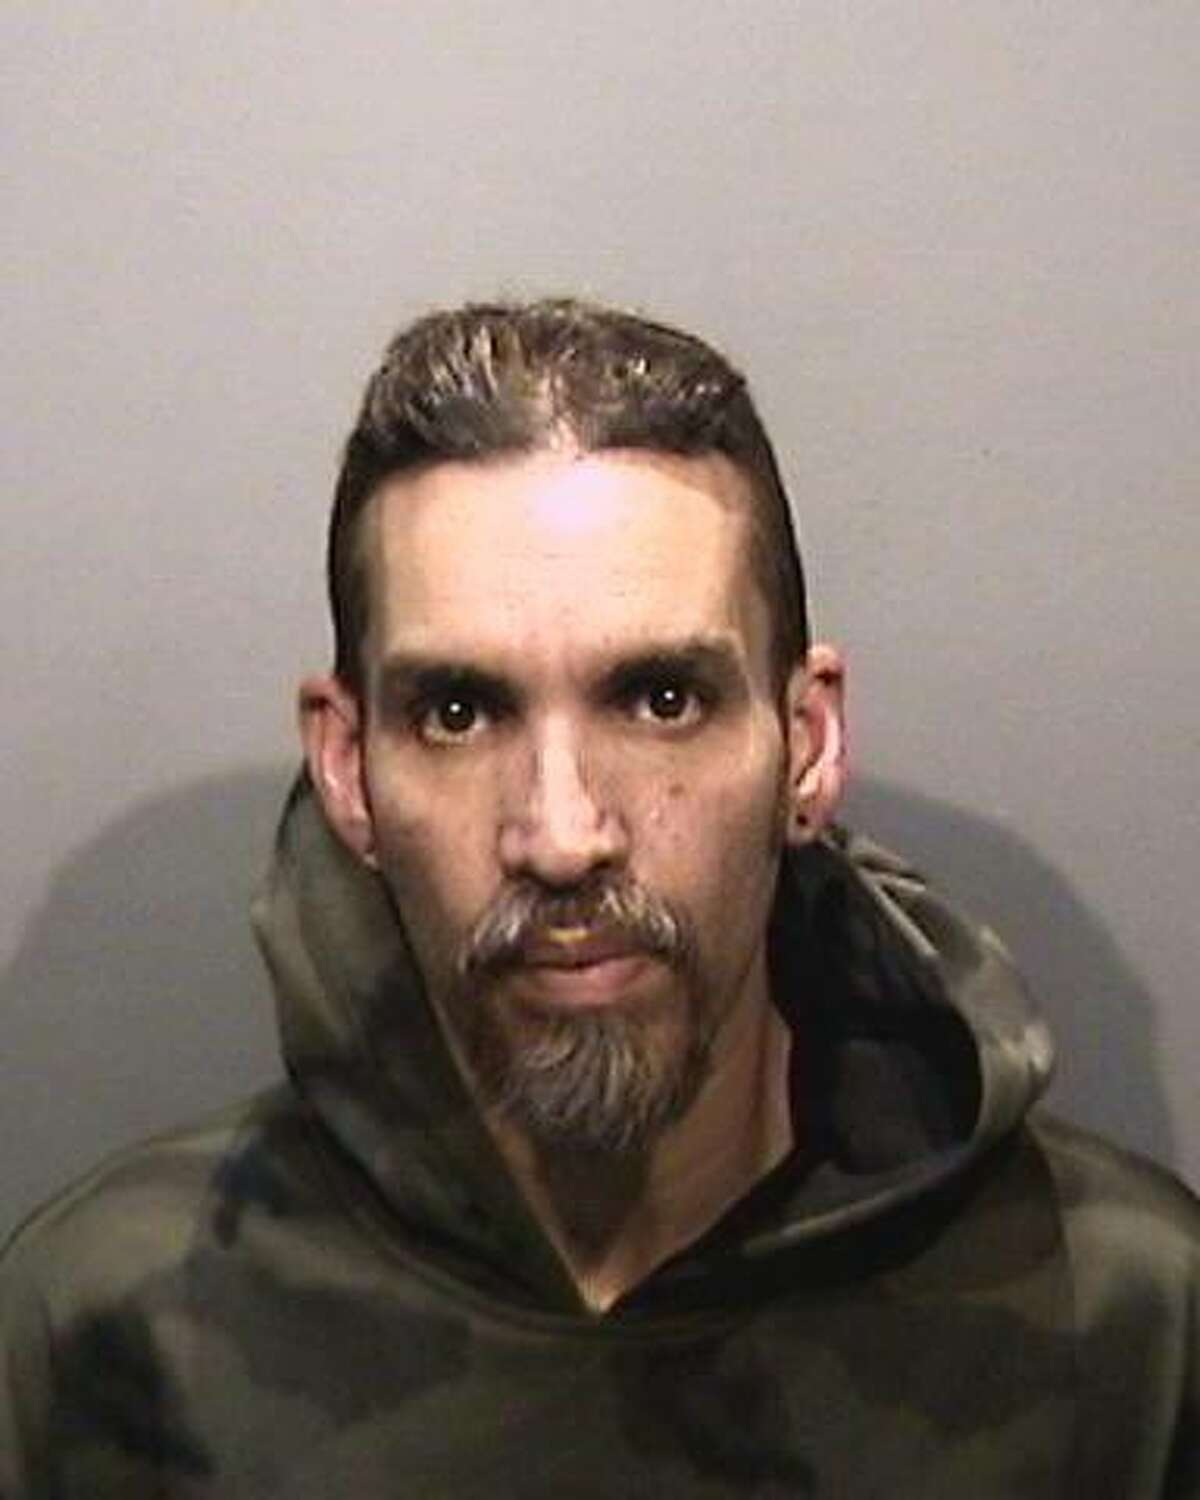 Derick Almena, the master tenant of the Ghost Ship warehouse in Oakland, Calif., where 36 people died in a fire in December 2016, was arrested Monday, June 5, 2017. The art space's creative director, Max Harris, was also arrested and the pair were charged with felony involuntary manslaughter.